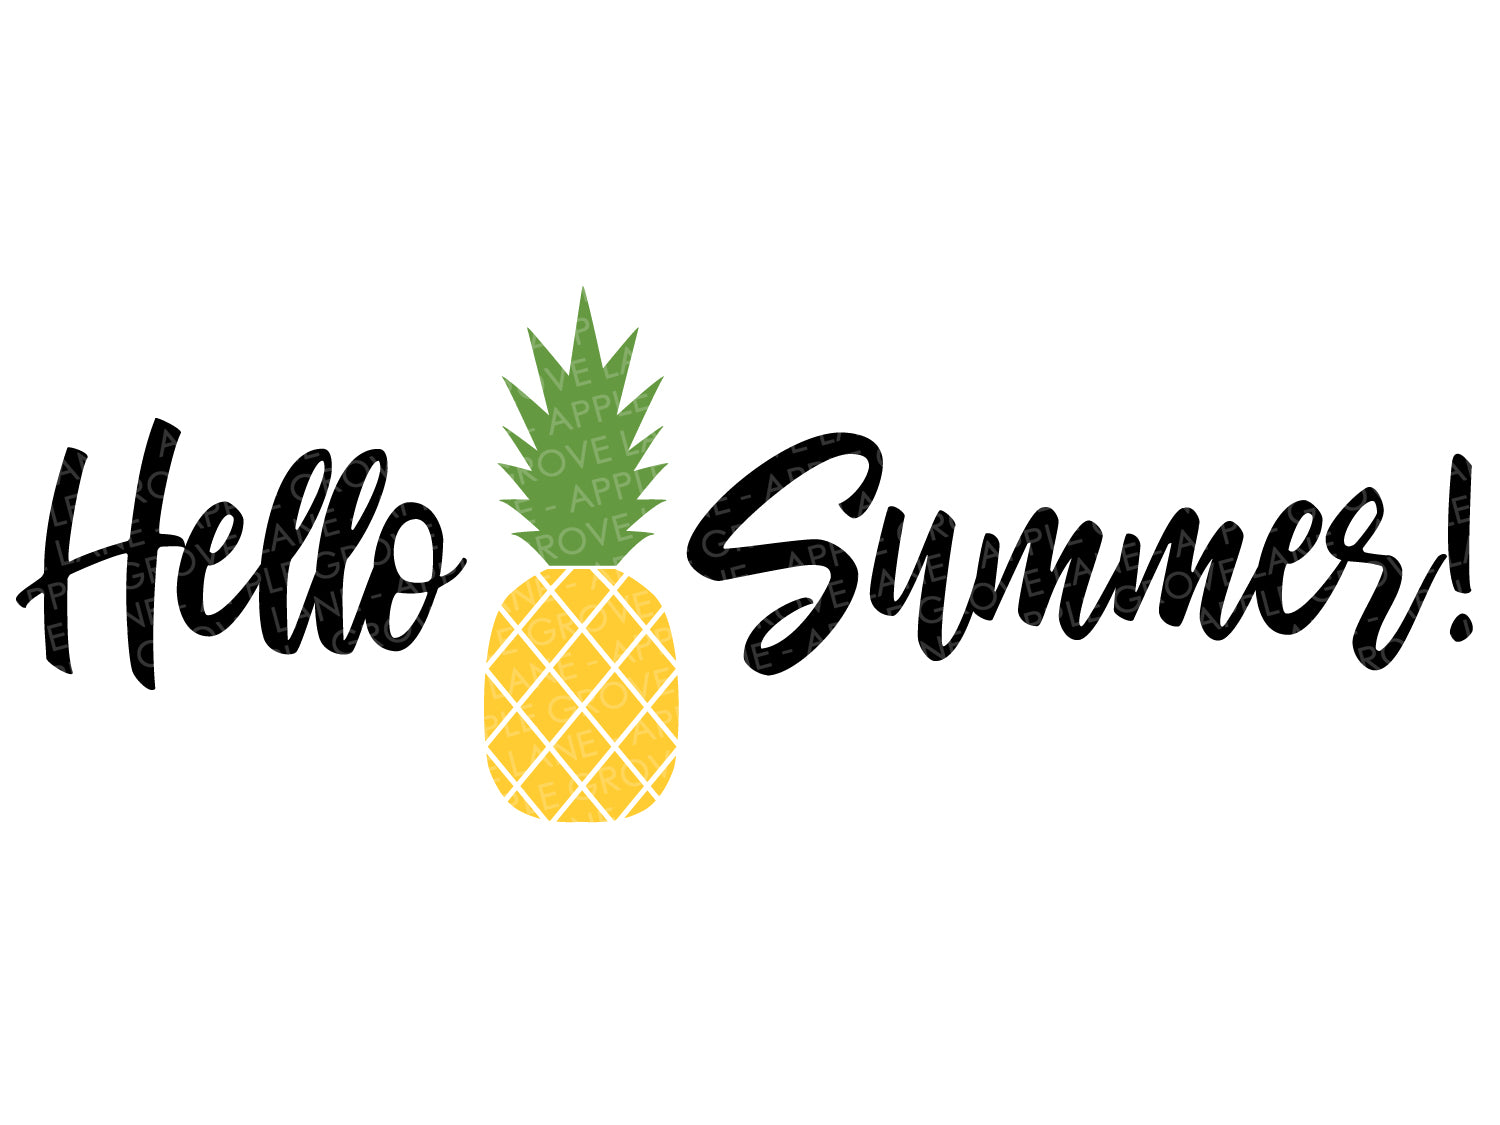 Hello Summer Svg - Pineapple Svg - Stand Tall Svg - Fruit Svg - Tropical Svg - Hawaii Svg - Beach Svg Eps Png Dxf